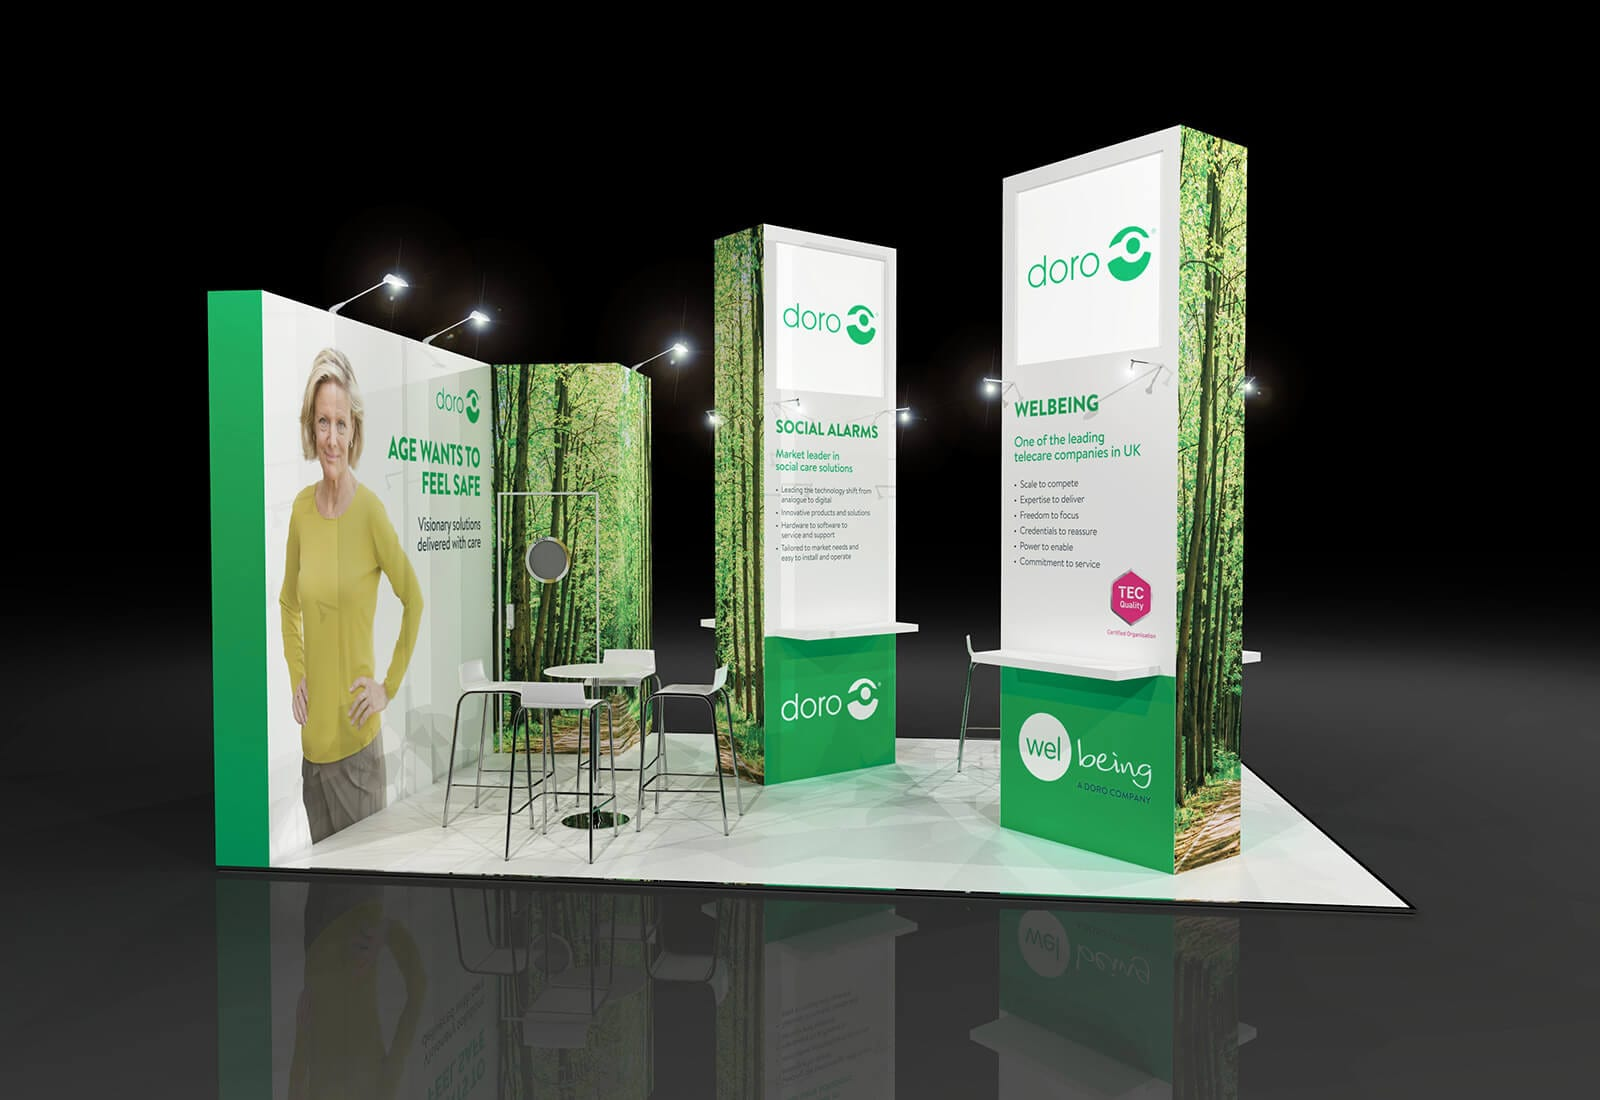 Welbeing & Doro exhibition stand